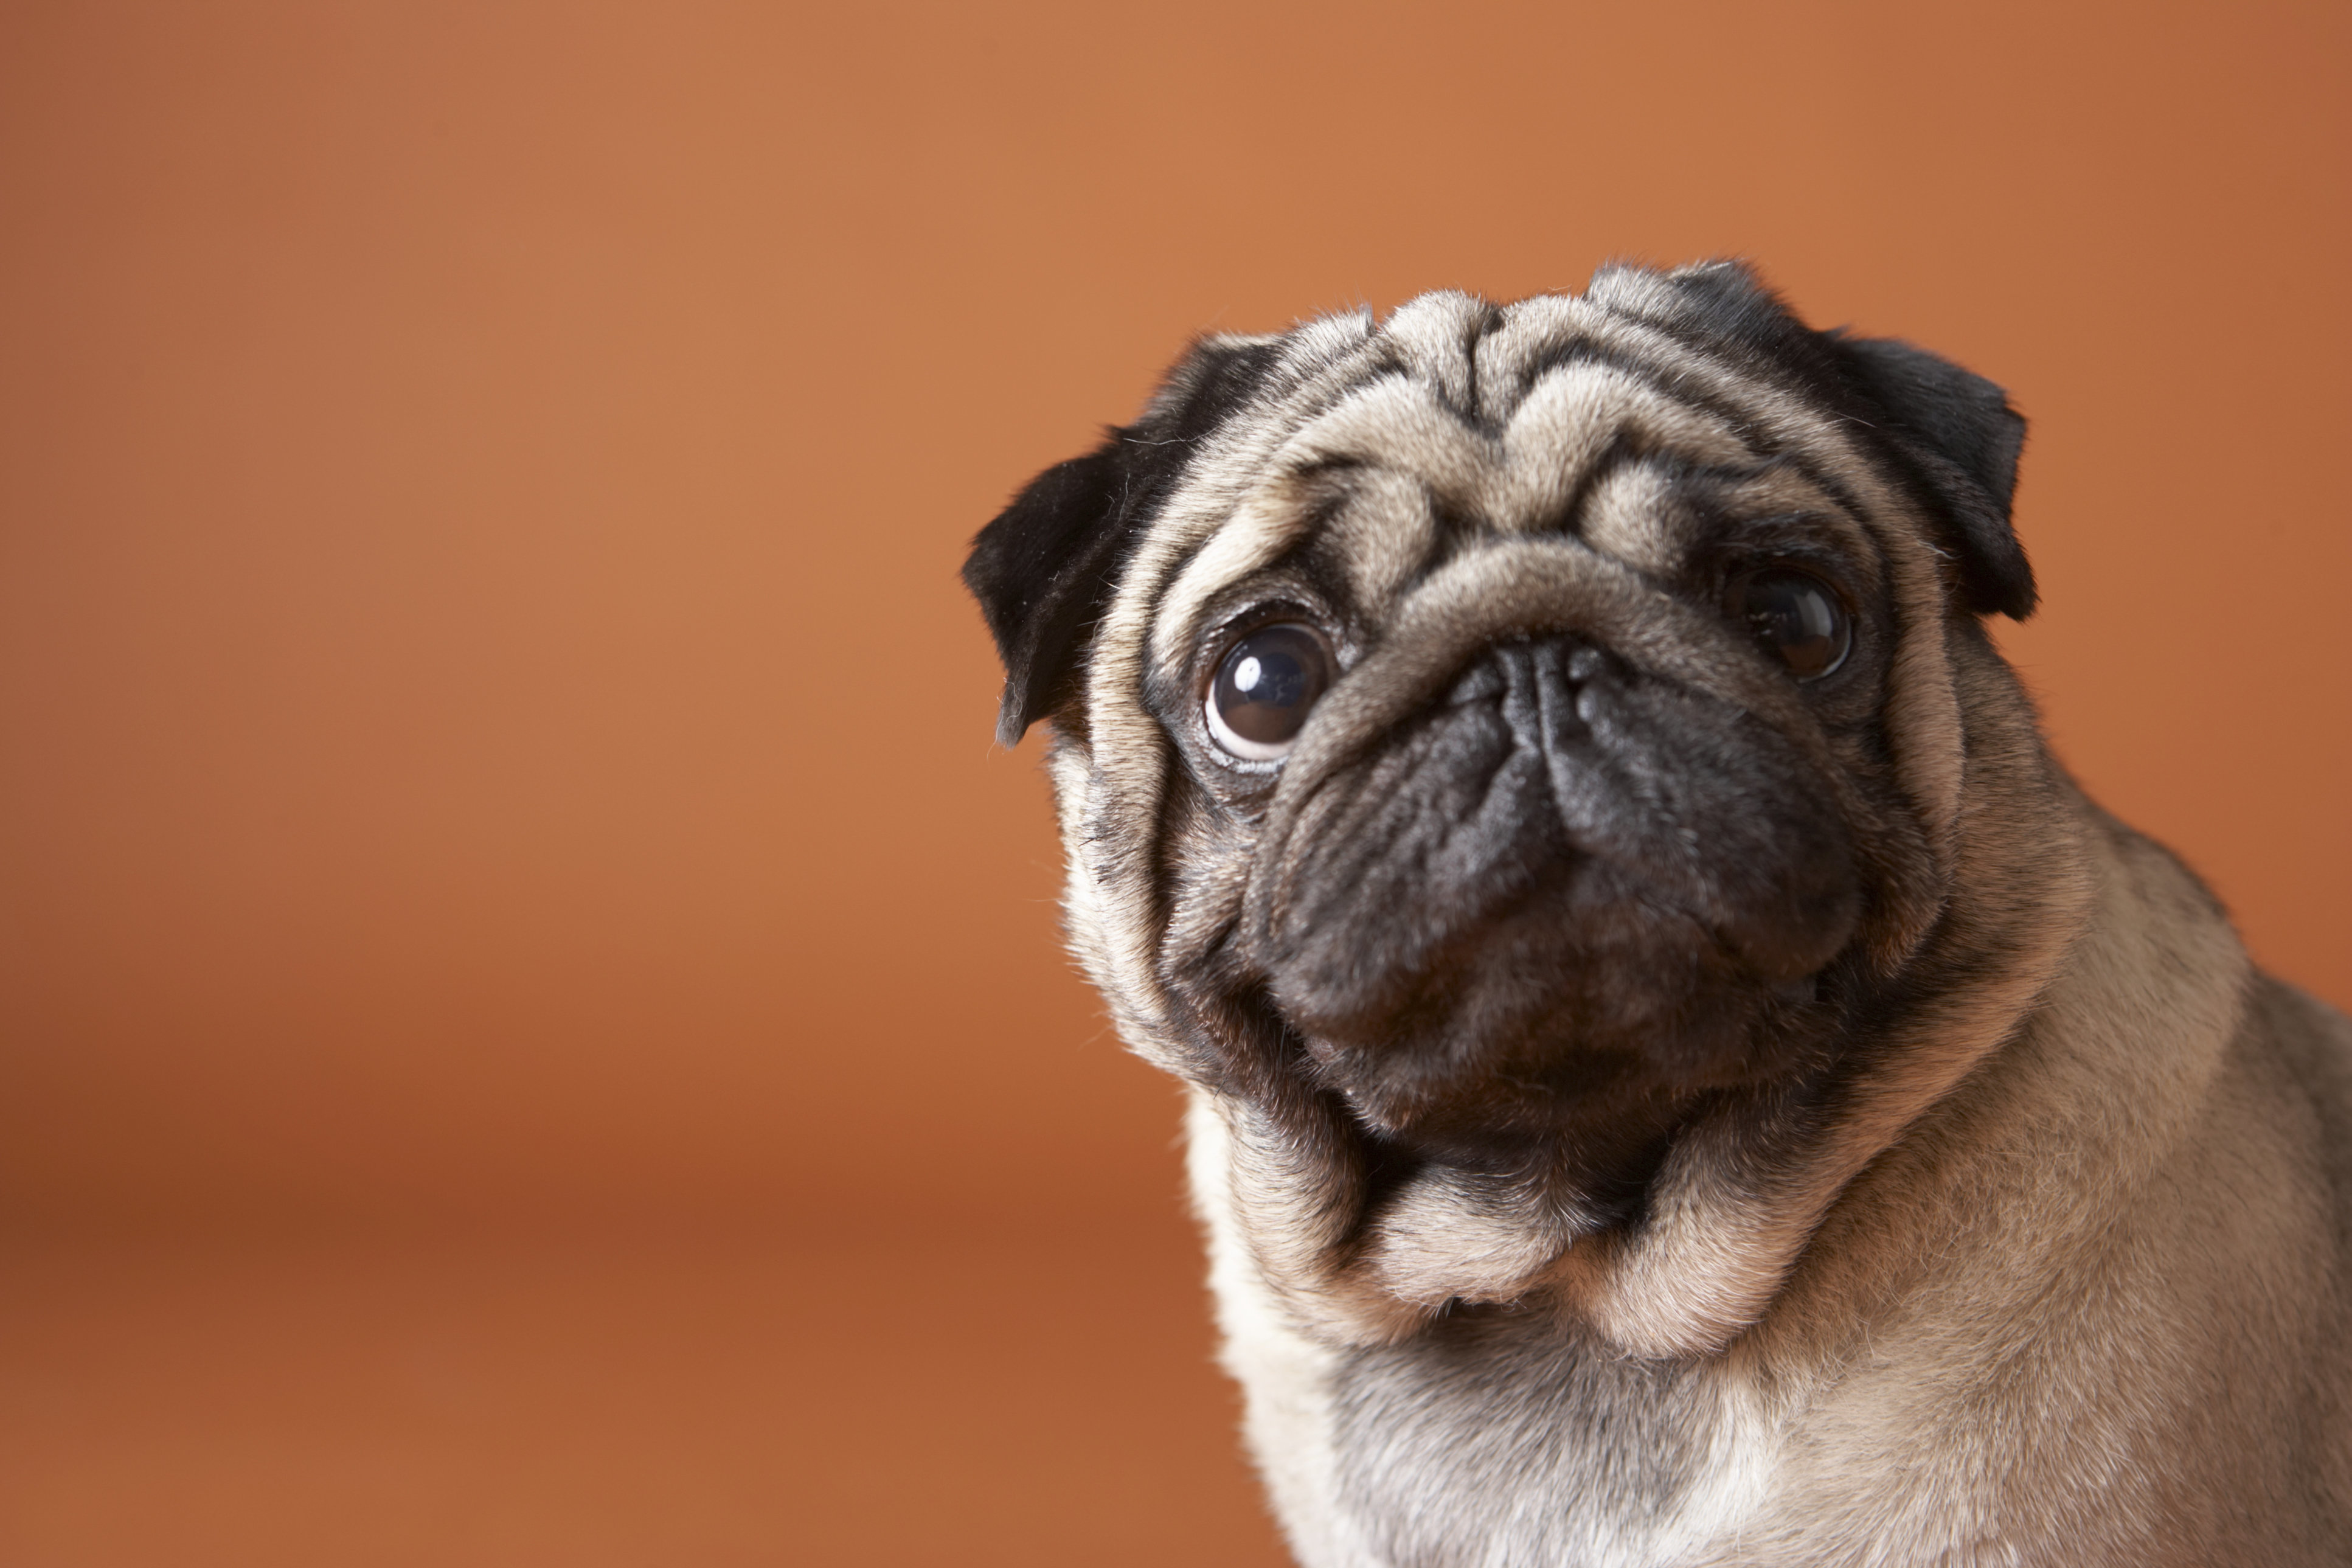 Almost One In Three Pugs Struggle To Walk Properly